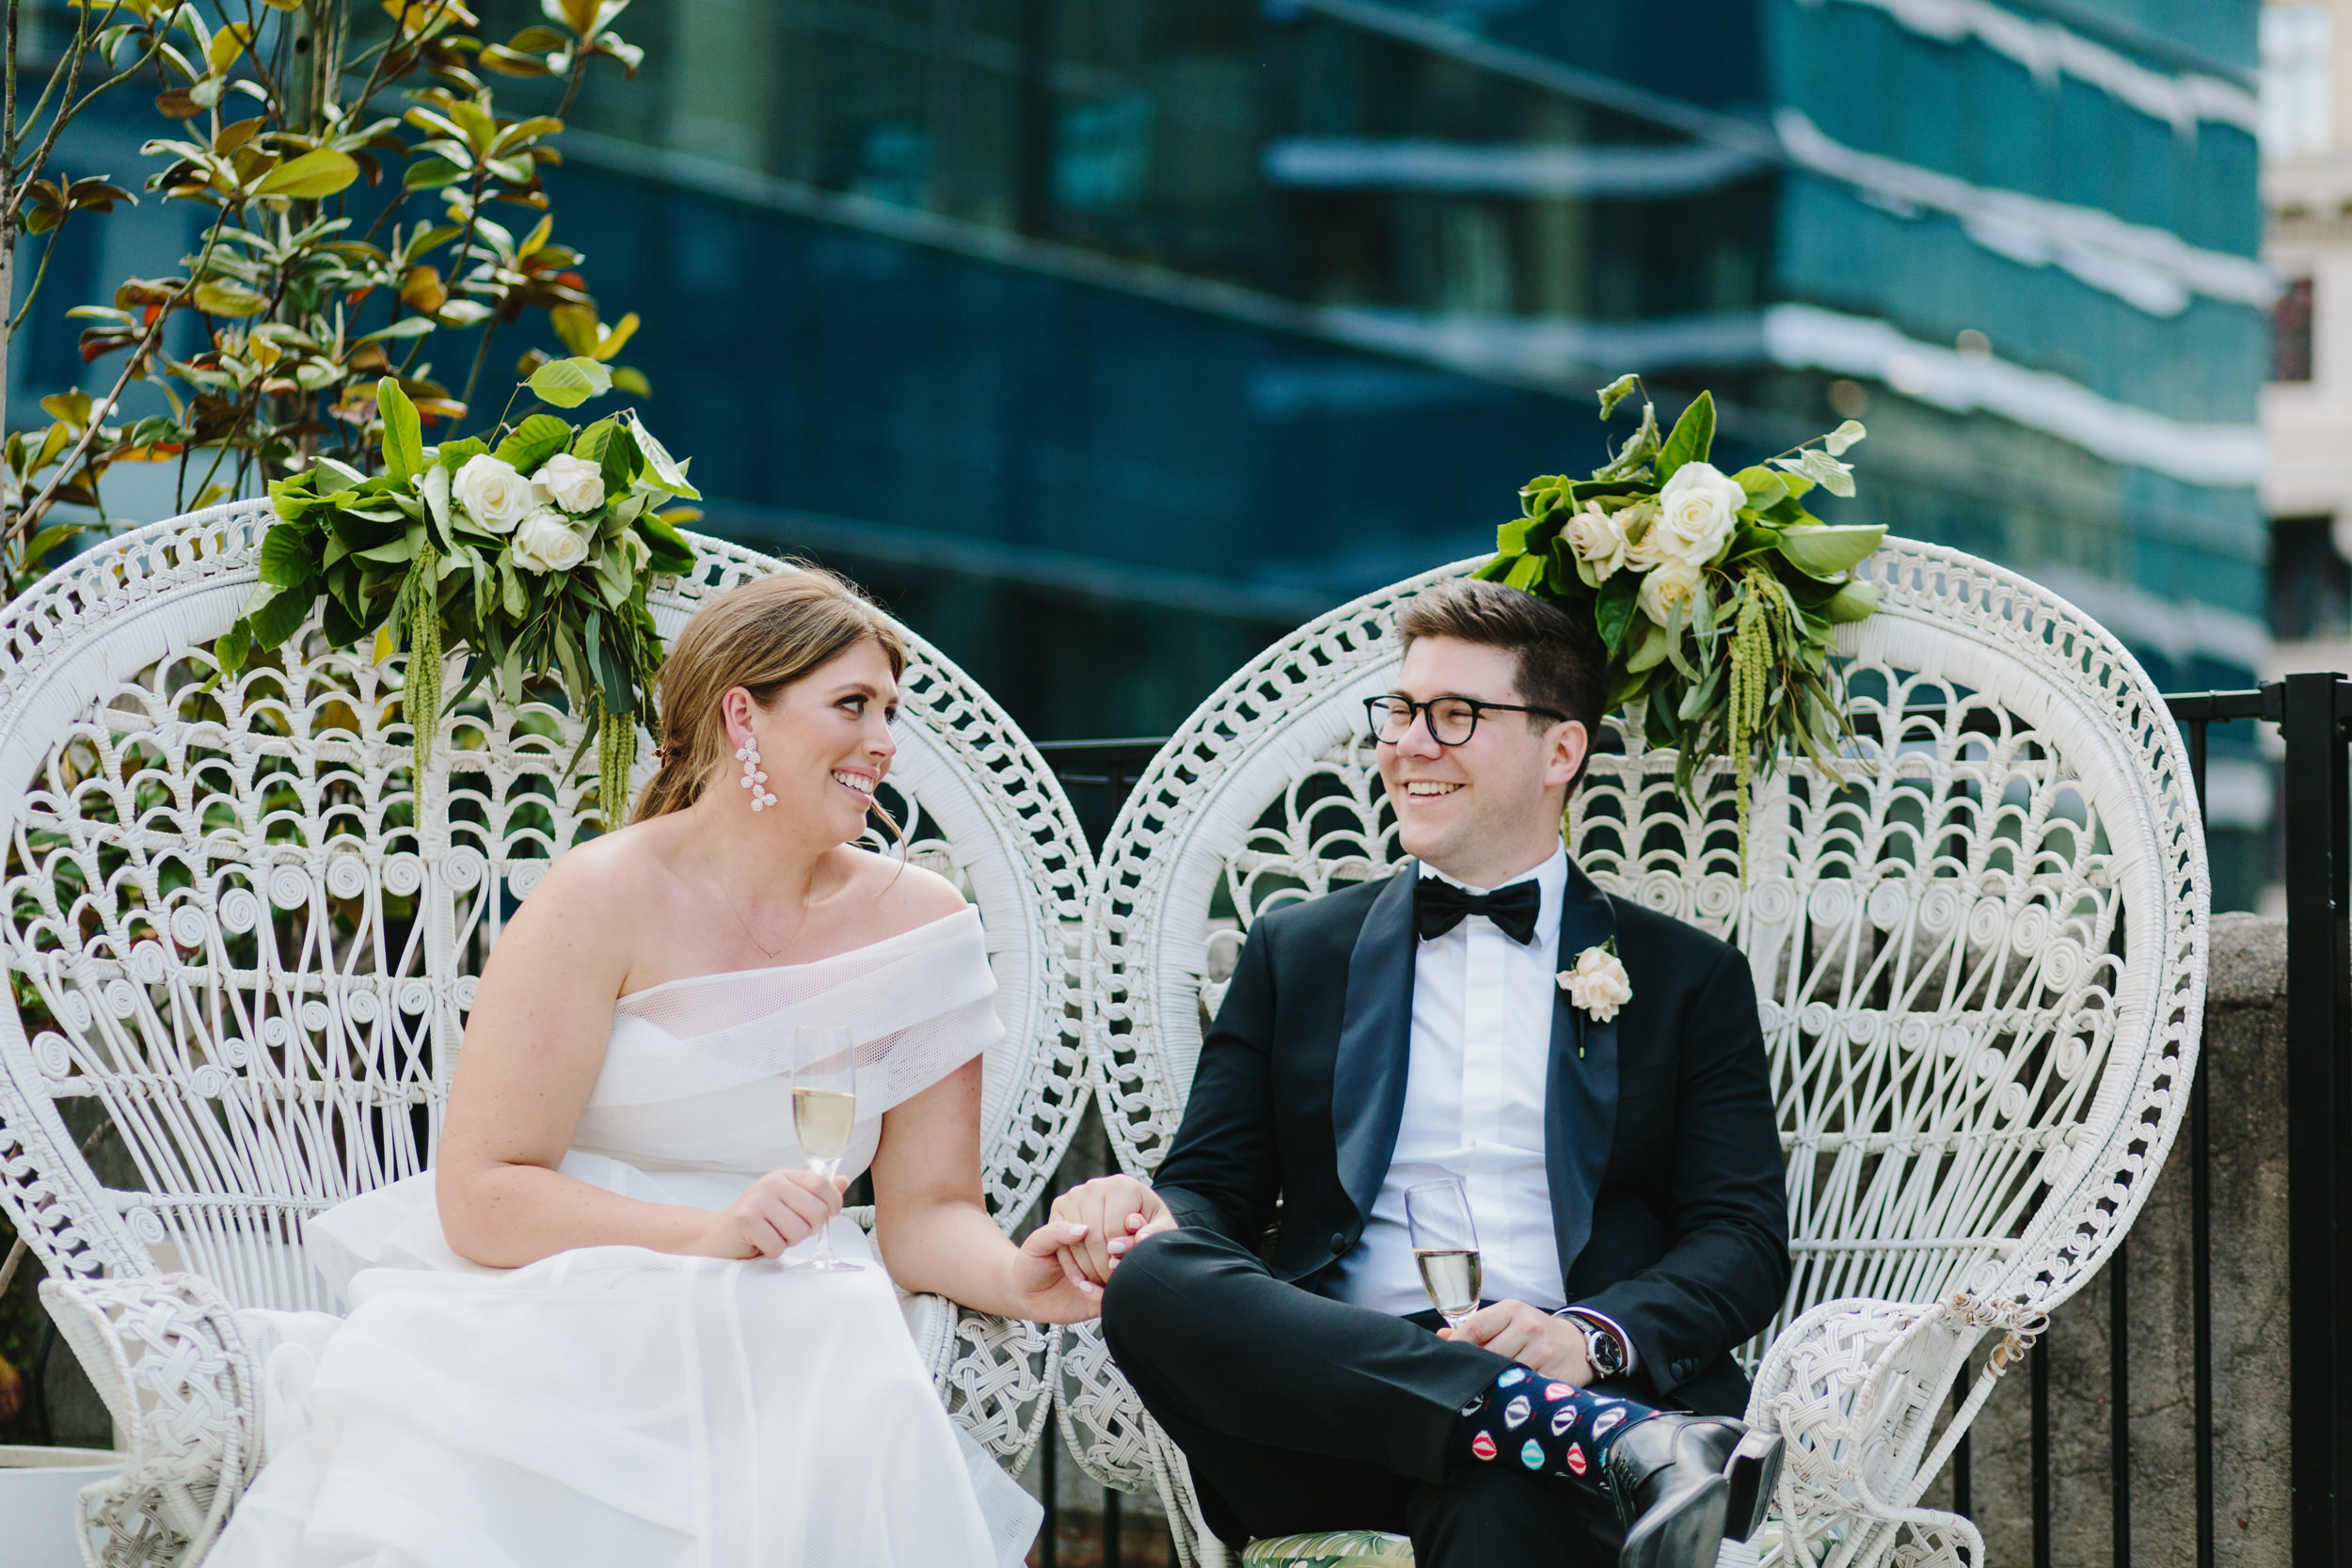 Melbourne_City_Rooftop_Wedding_Tyson_Brigette099.JPG